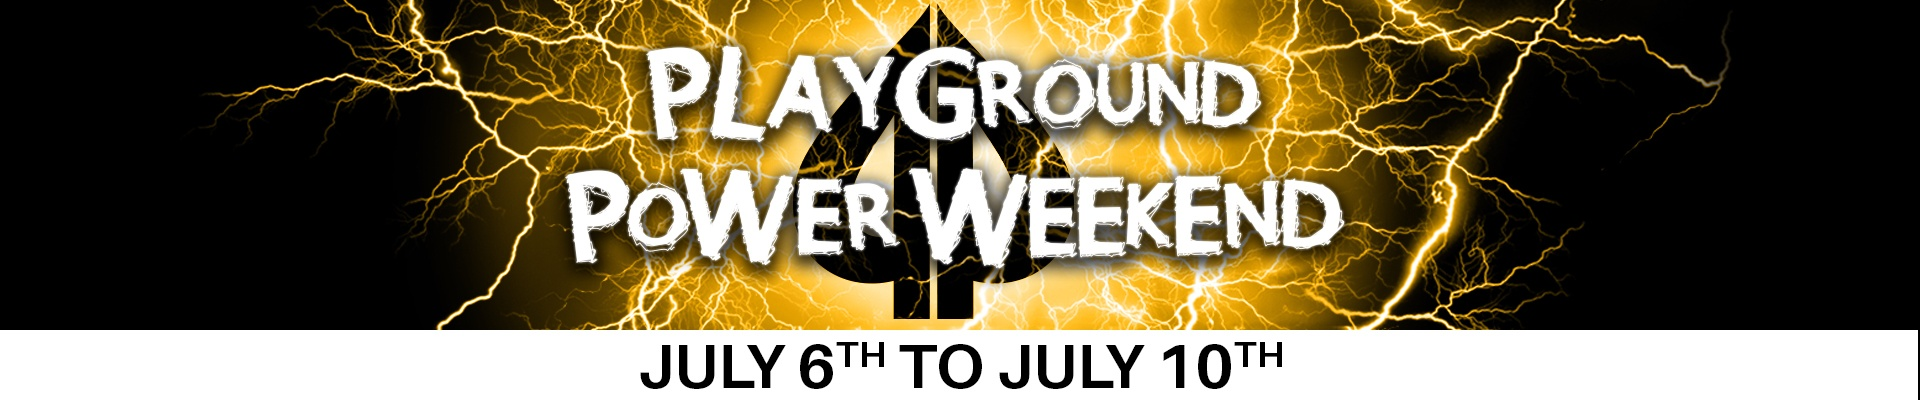 Playground Power Weekend 2017